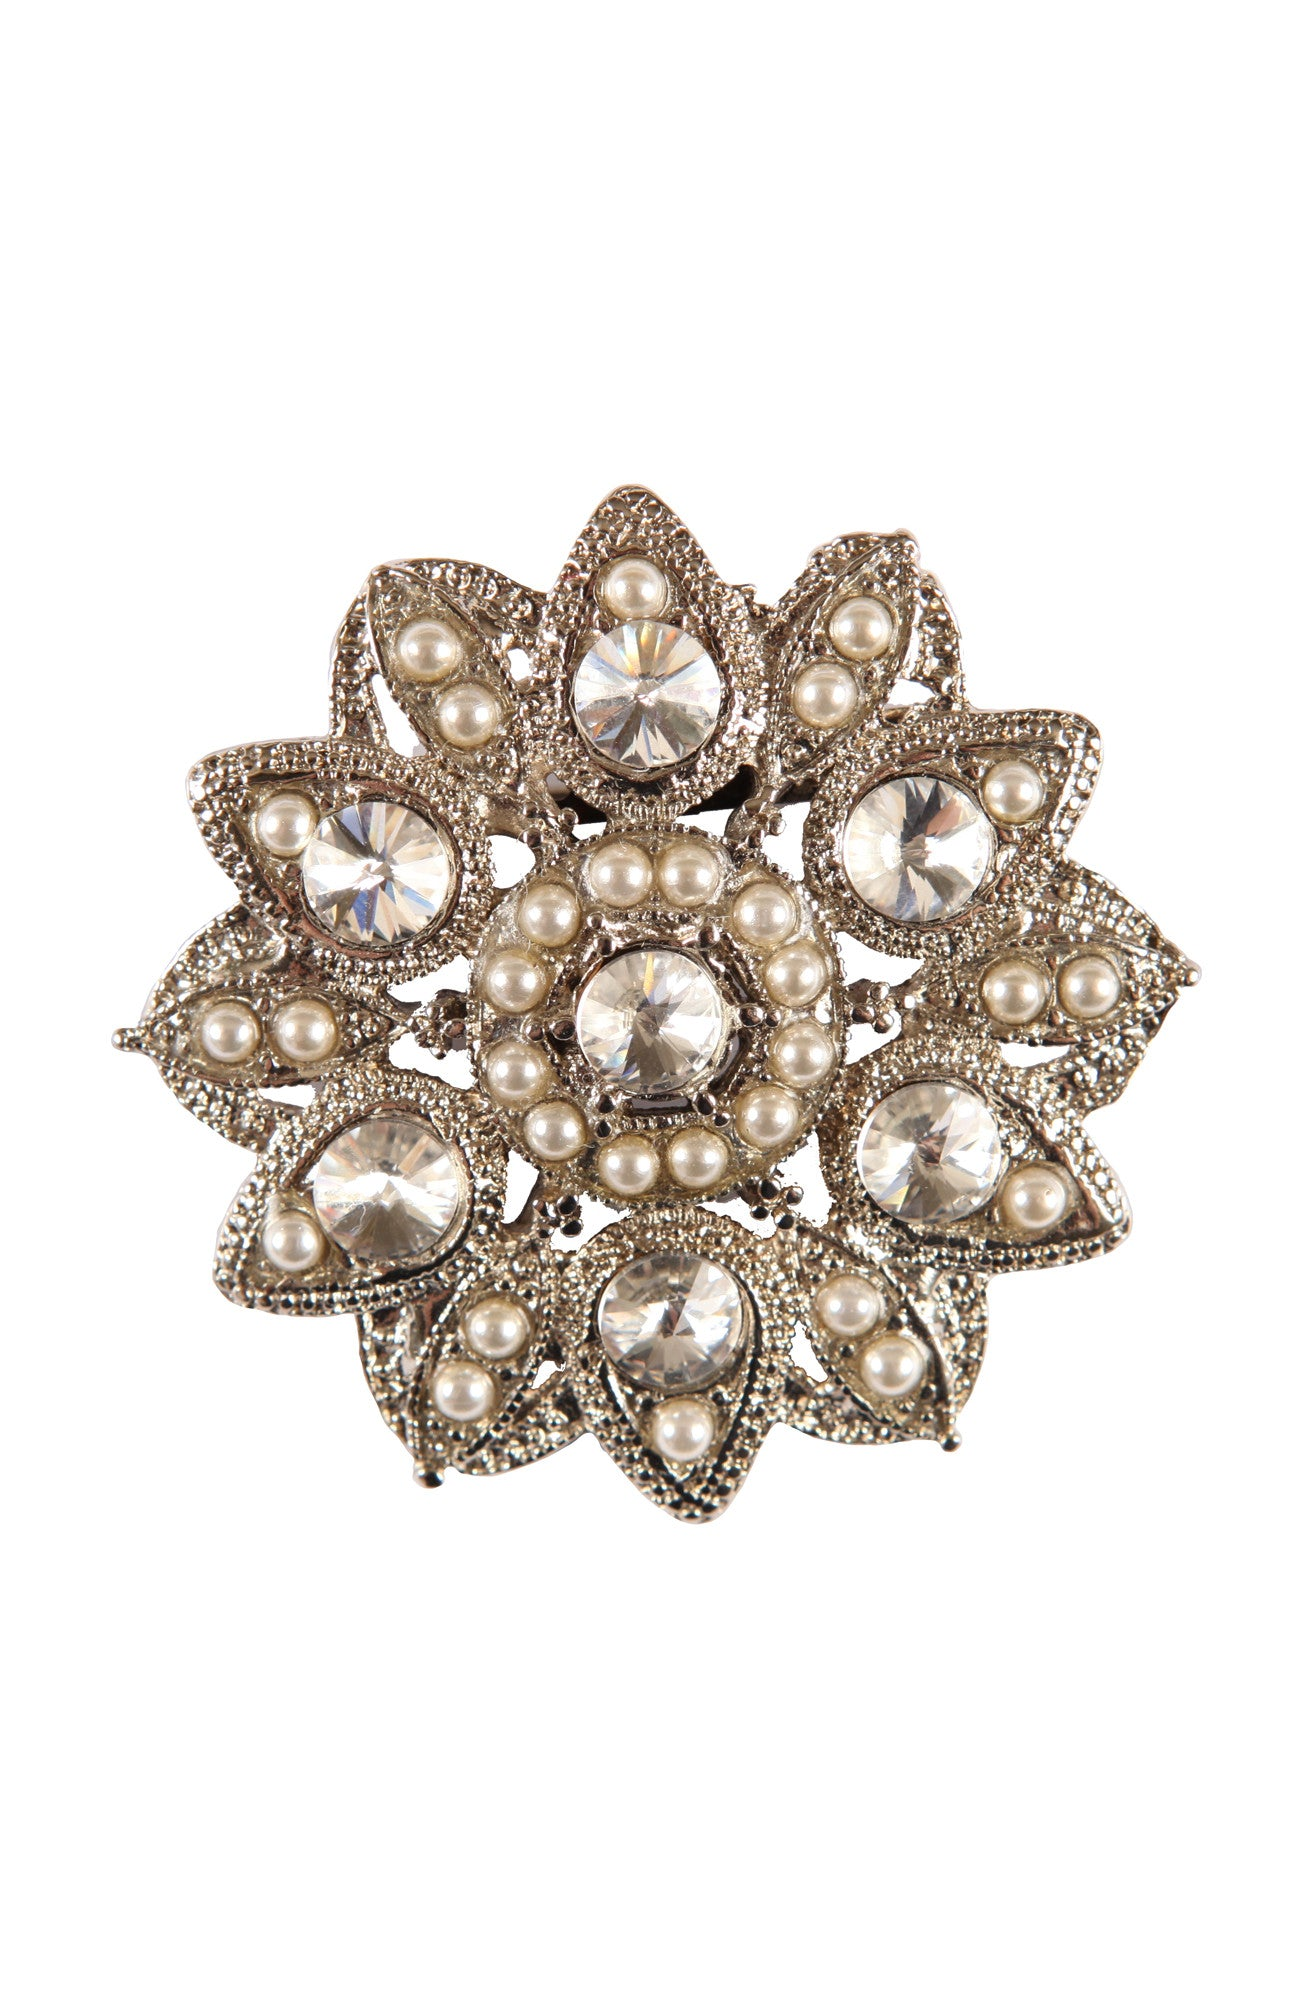 Large diamante and pearl style Brooch